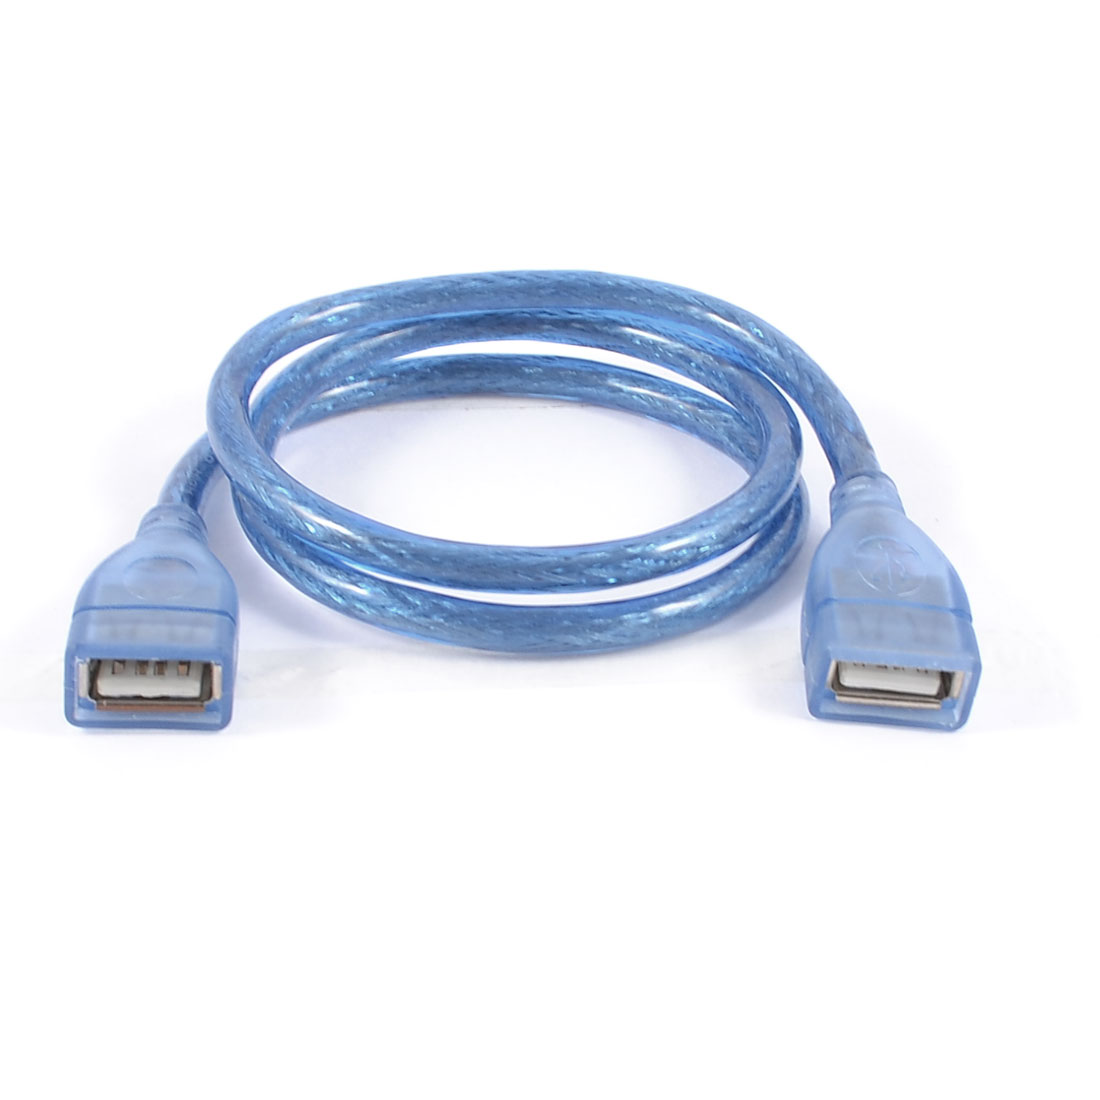 Blue Plastic Housing USB 2.0 Female to Female F/F Extension Cable Cord 60cm